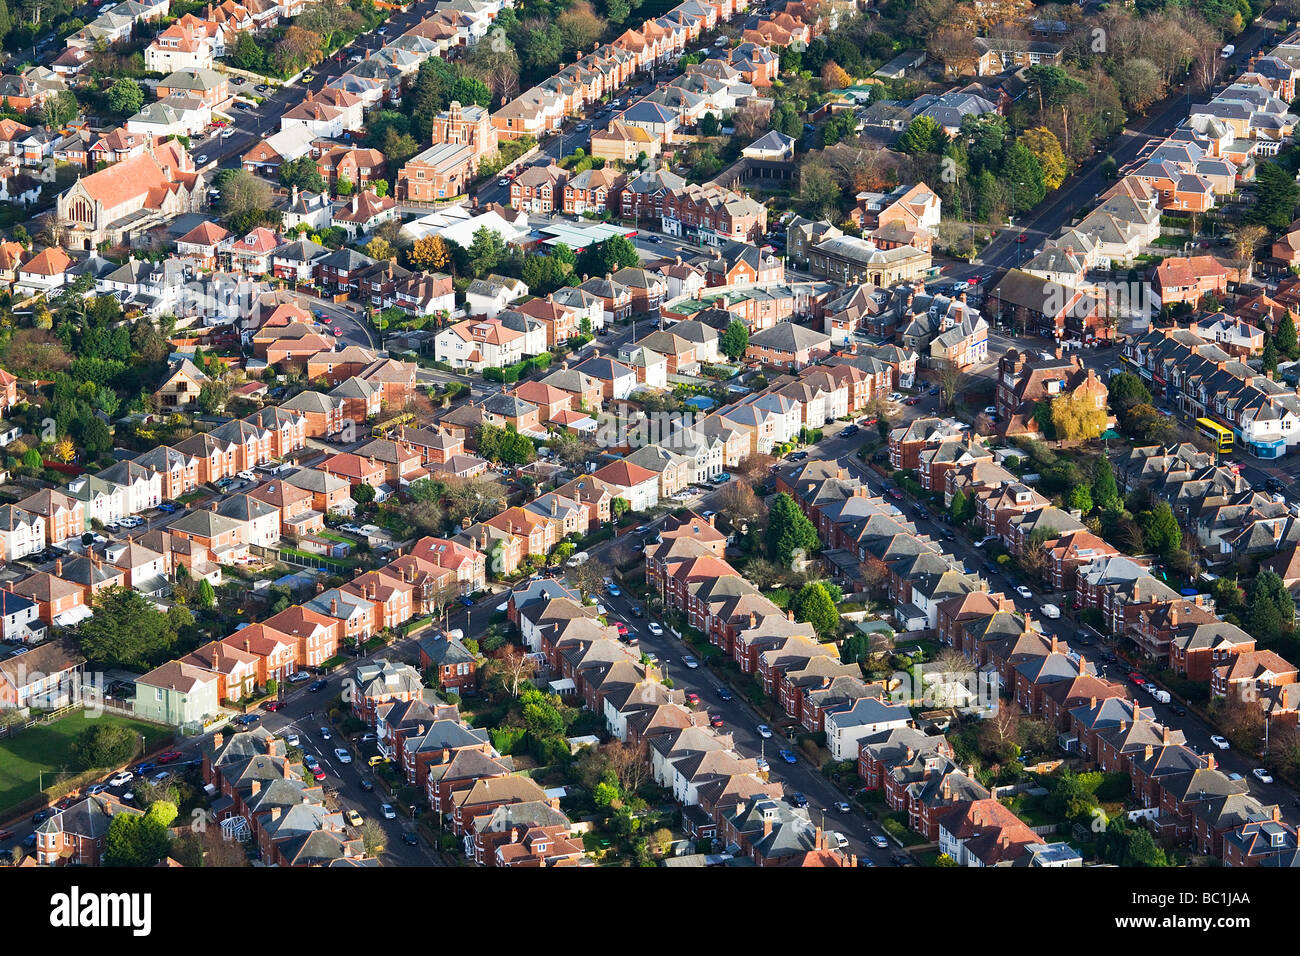 Aerial view of streets and houses. Charminster, Bournemouth, Dorset, UK. - Stock Image